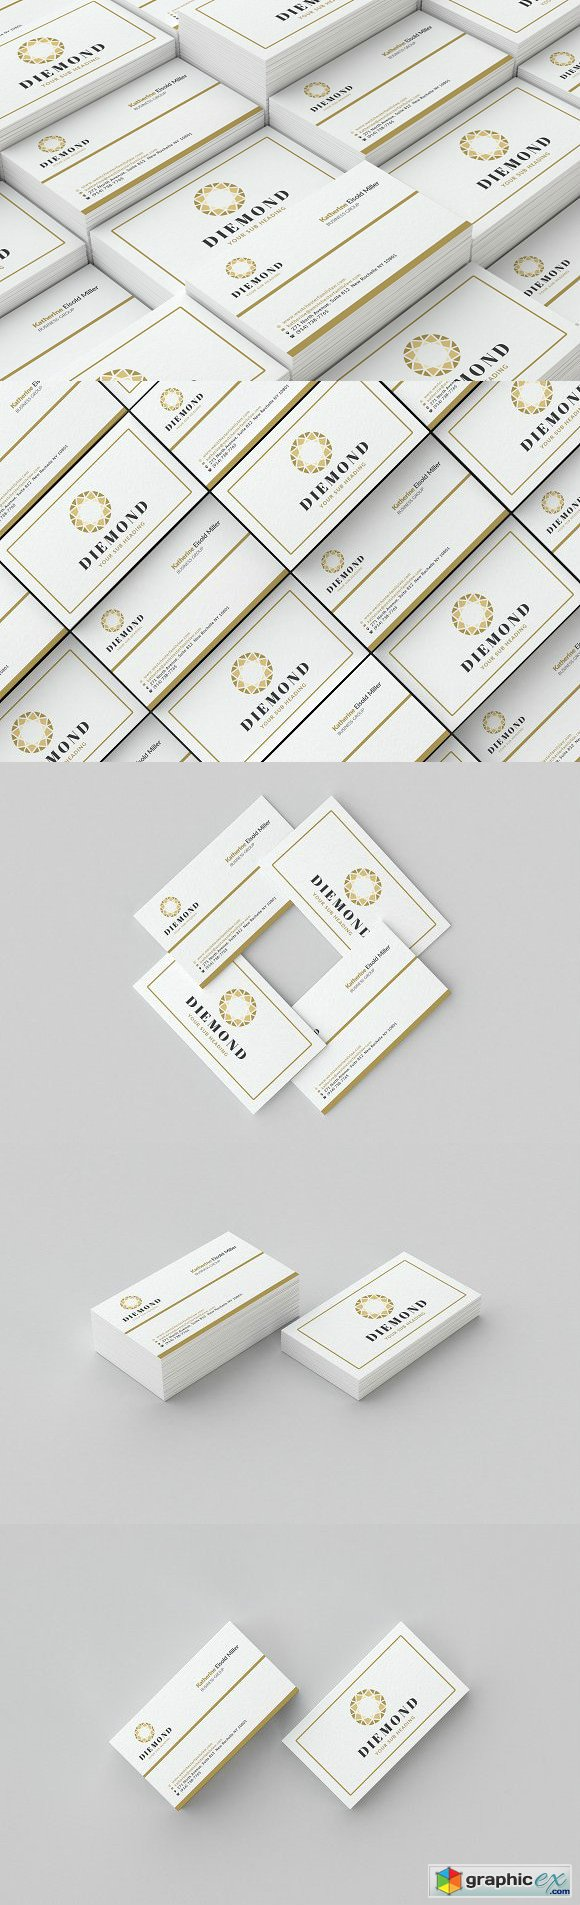 Creative Business Cards 2161889